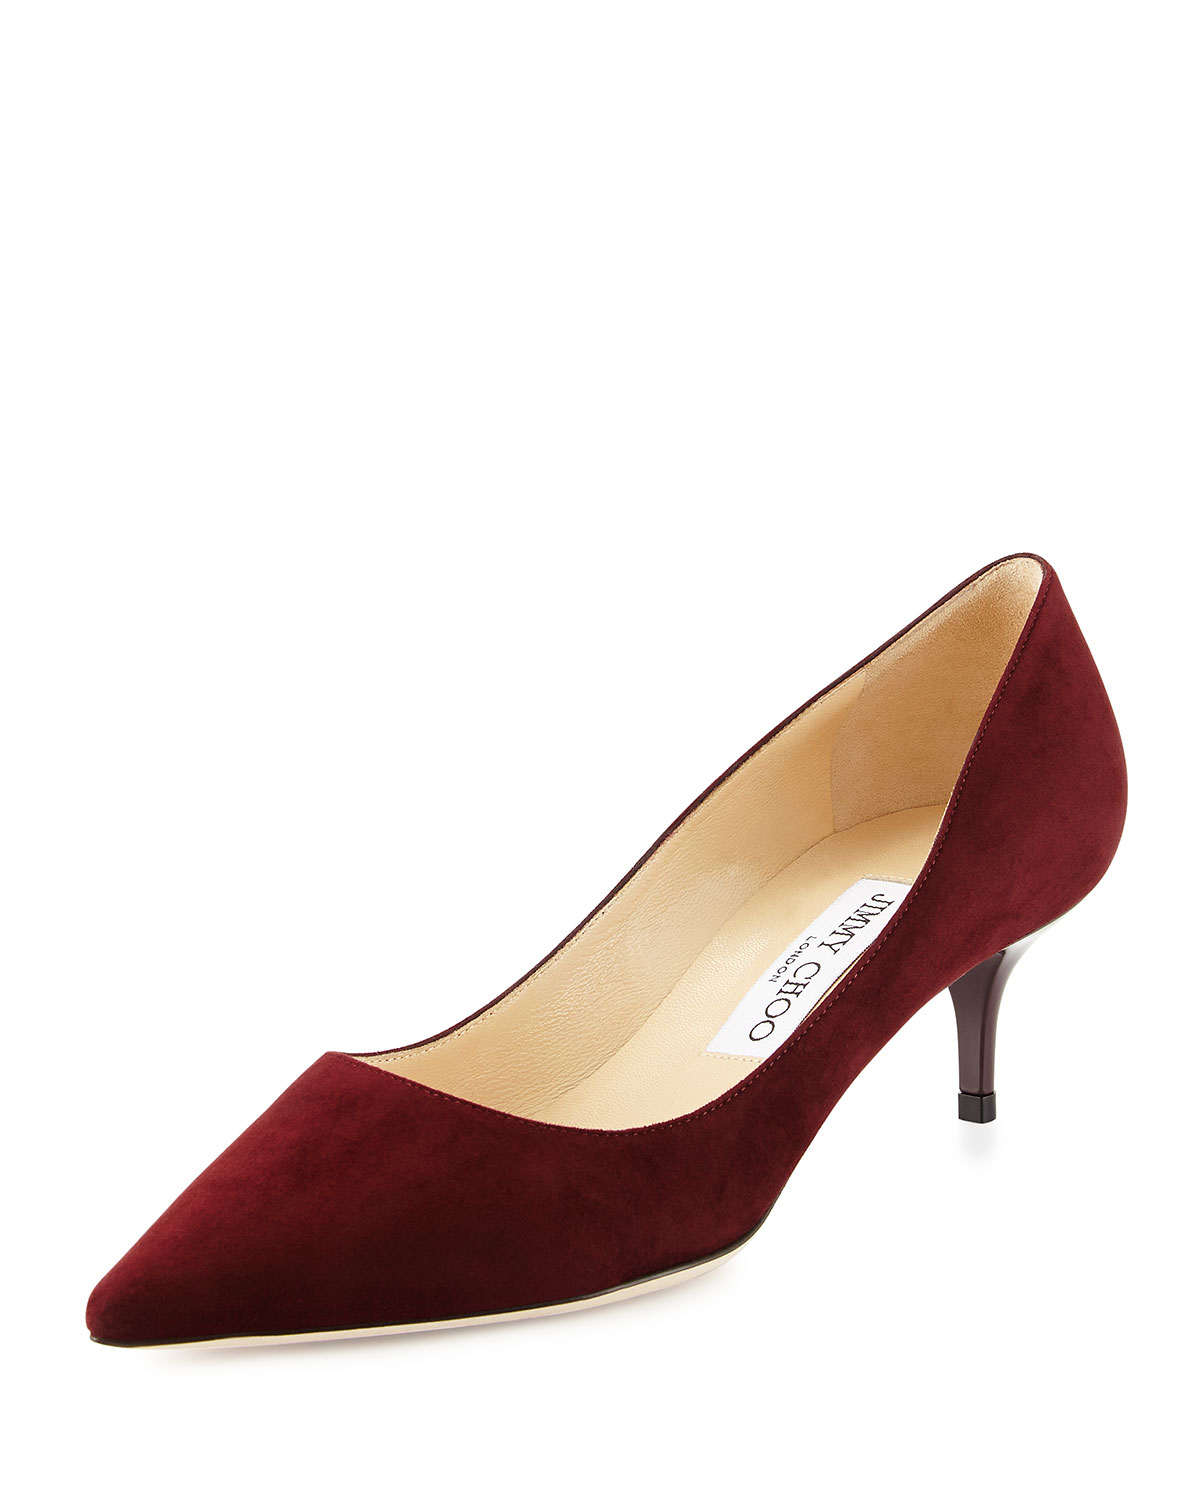 Jimmy choo Aza Suede Kitten-Heel Pumps in Red | Lyst